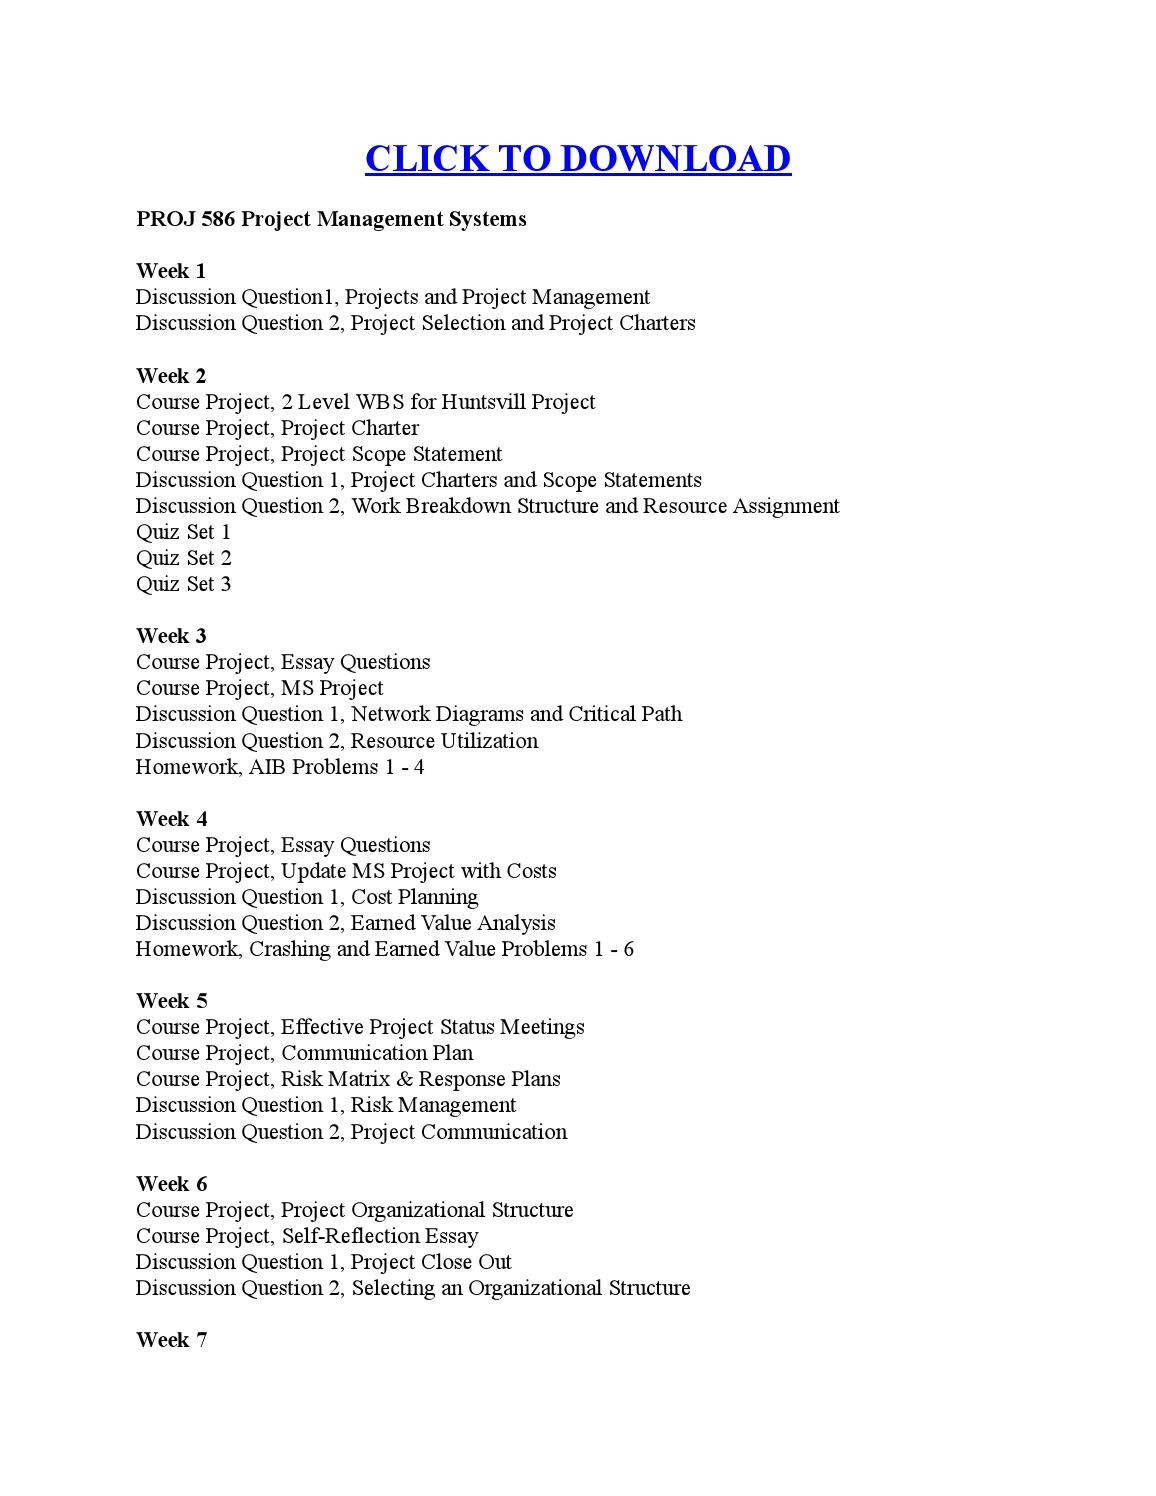 aib problems project manangement Proj-586 project management systems - week 3 aib problems, a+ tutorial before starting this homework assignment, please review the aib simulation in this week's lecture this simulation will.